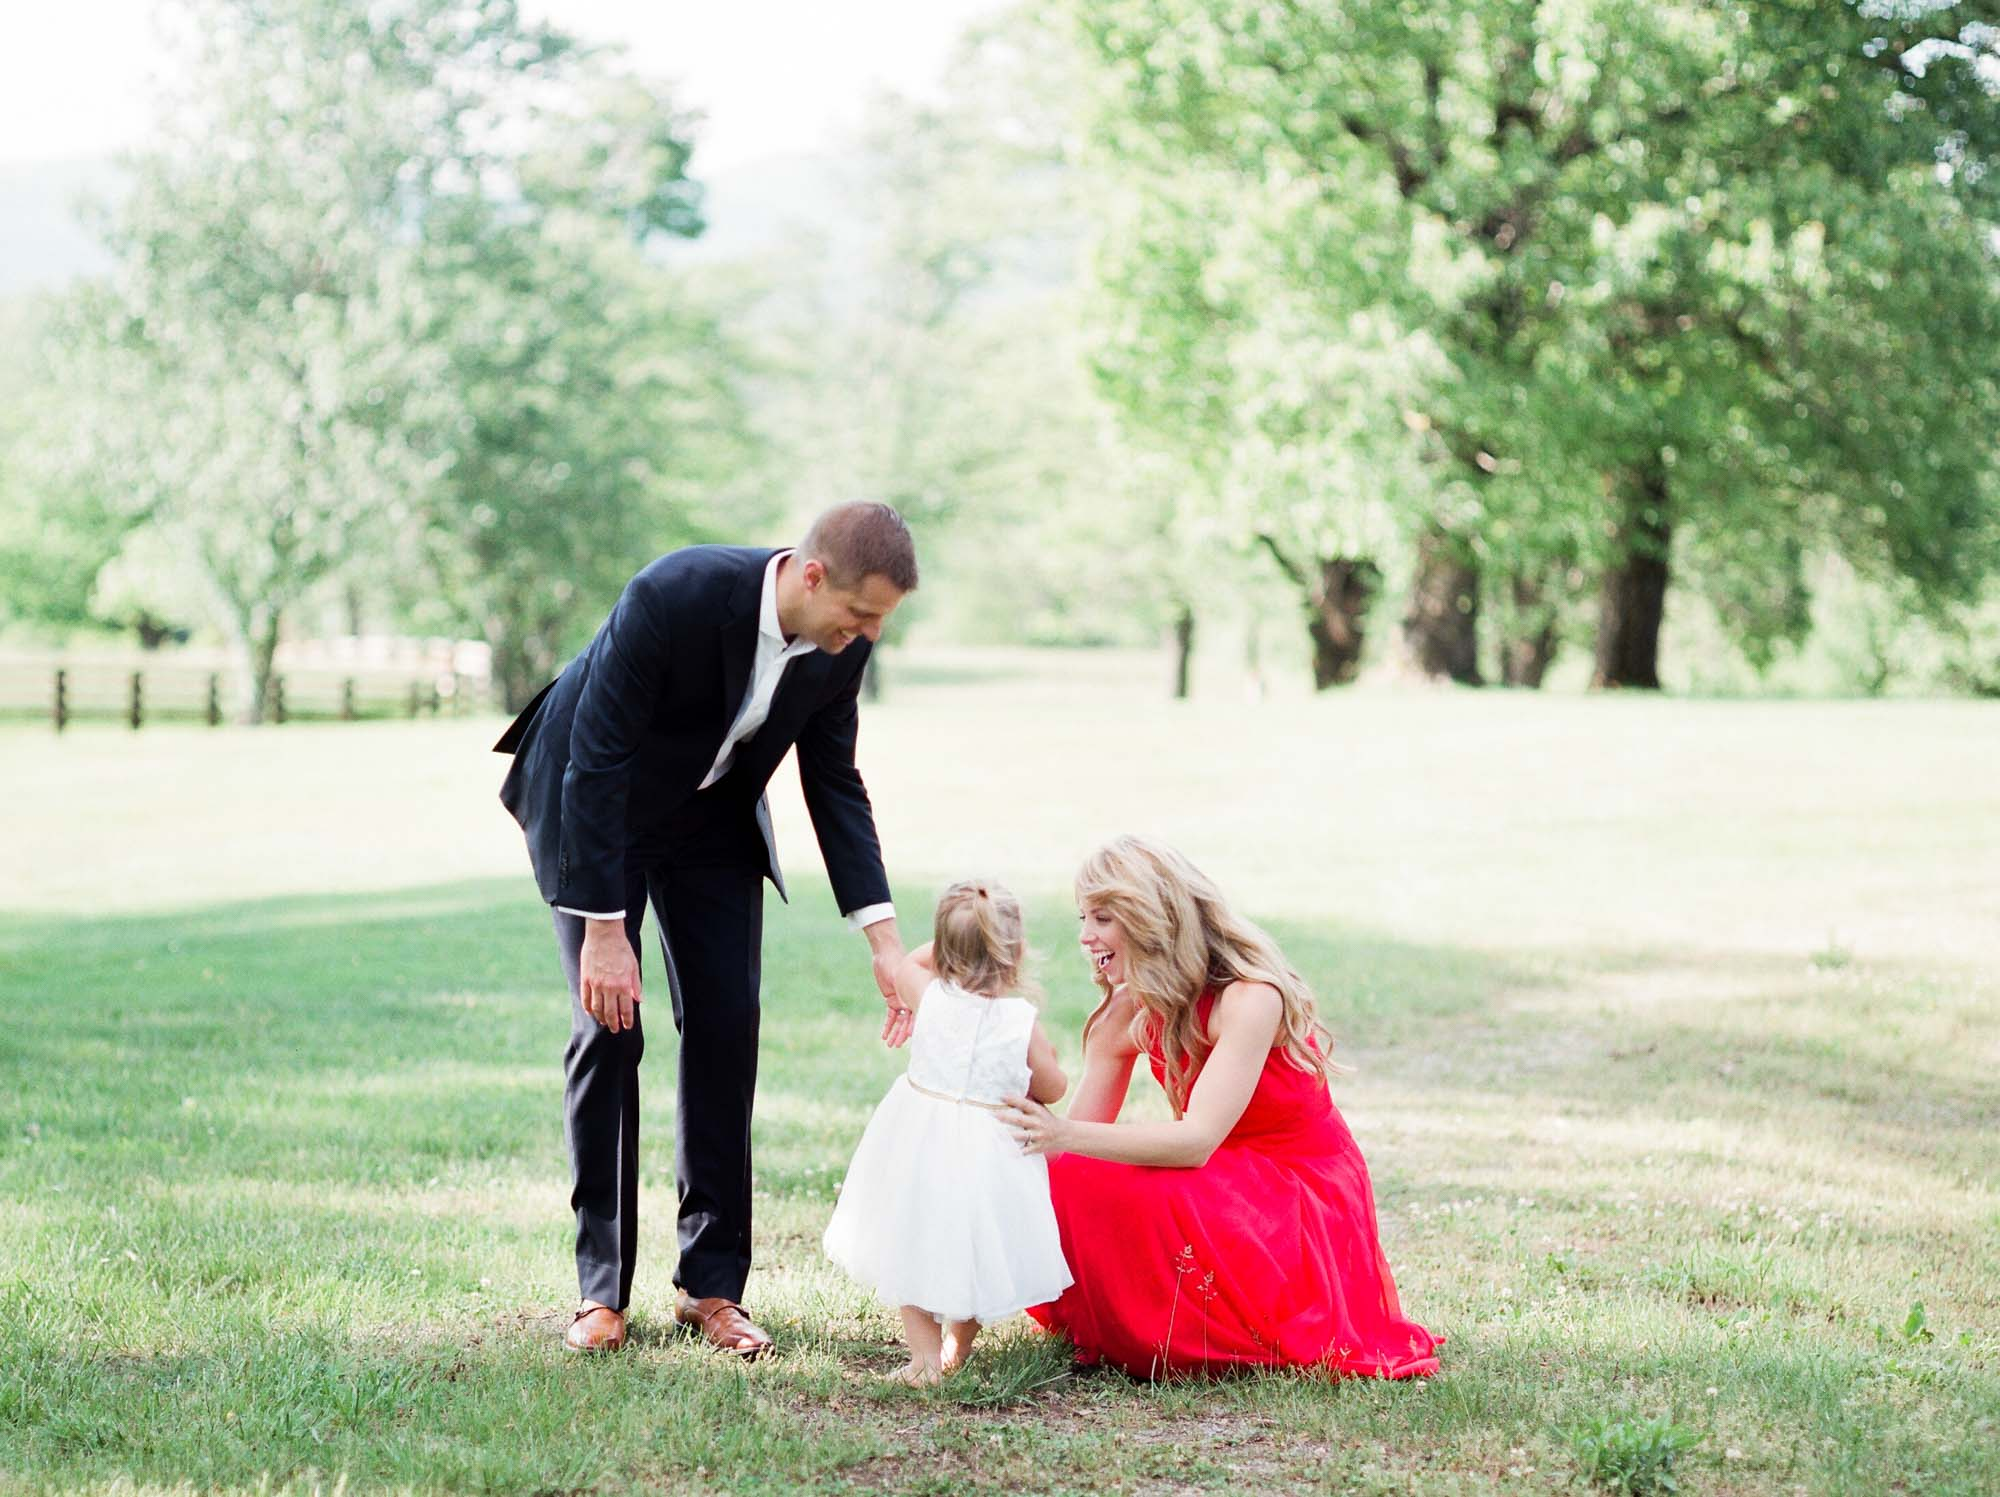 charlotte_lynchburg_film_family_wedding_photographer-27.jpg